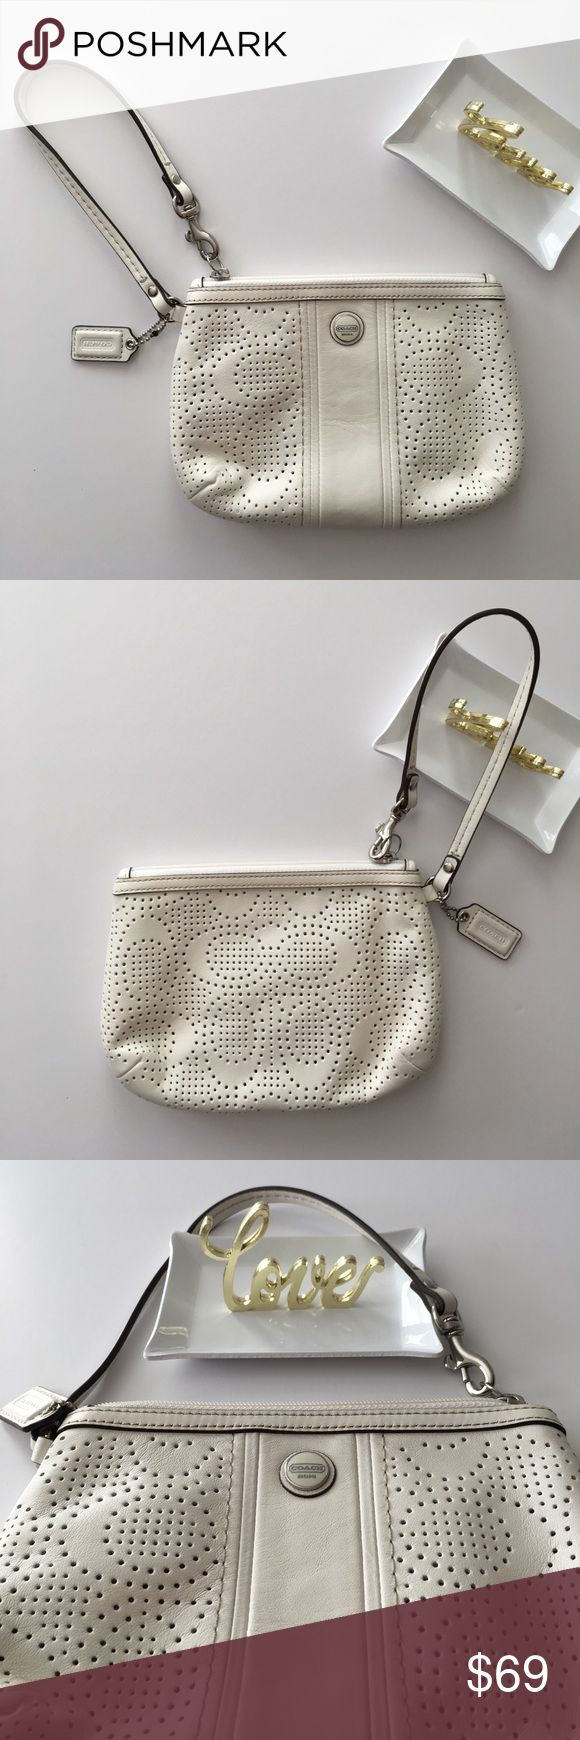 Coach Wristlet NWOT. Authentic beautiful off white leather wristlet with one slot pocket inside and cloth lined. See pics for measurements. Coach Bags Clutches & Wristlets